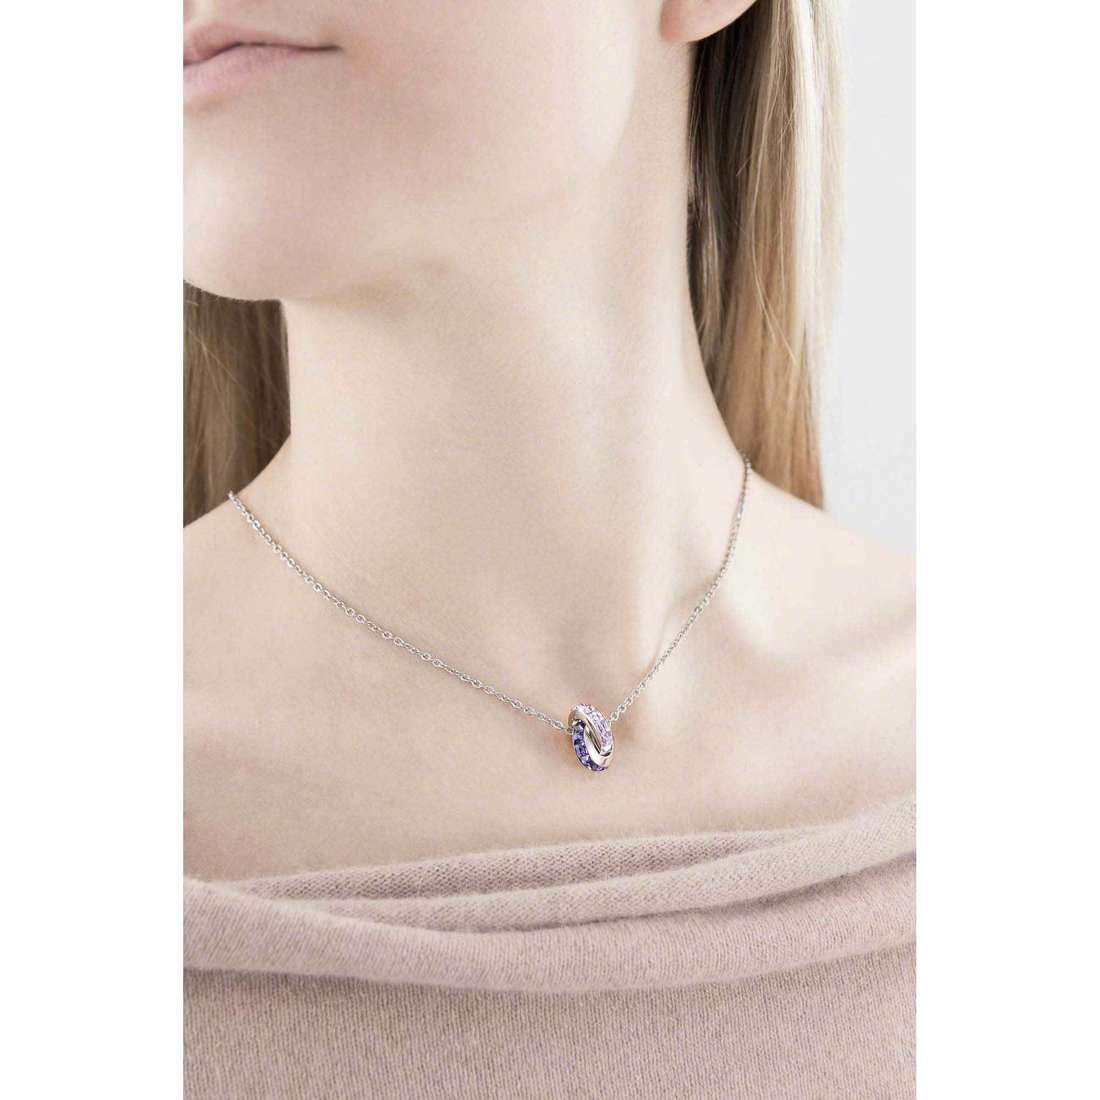 Brosway colliers Romeo & Juliet femme BRJ42 indosso